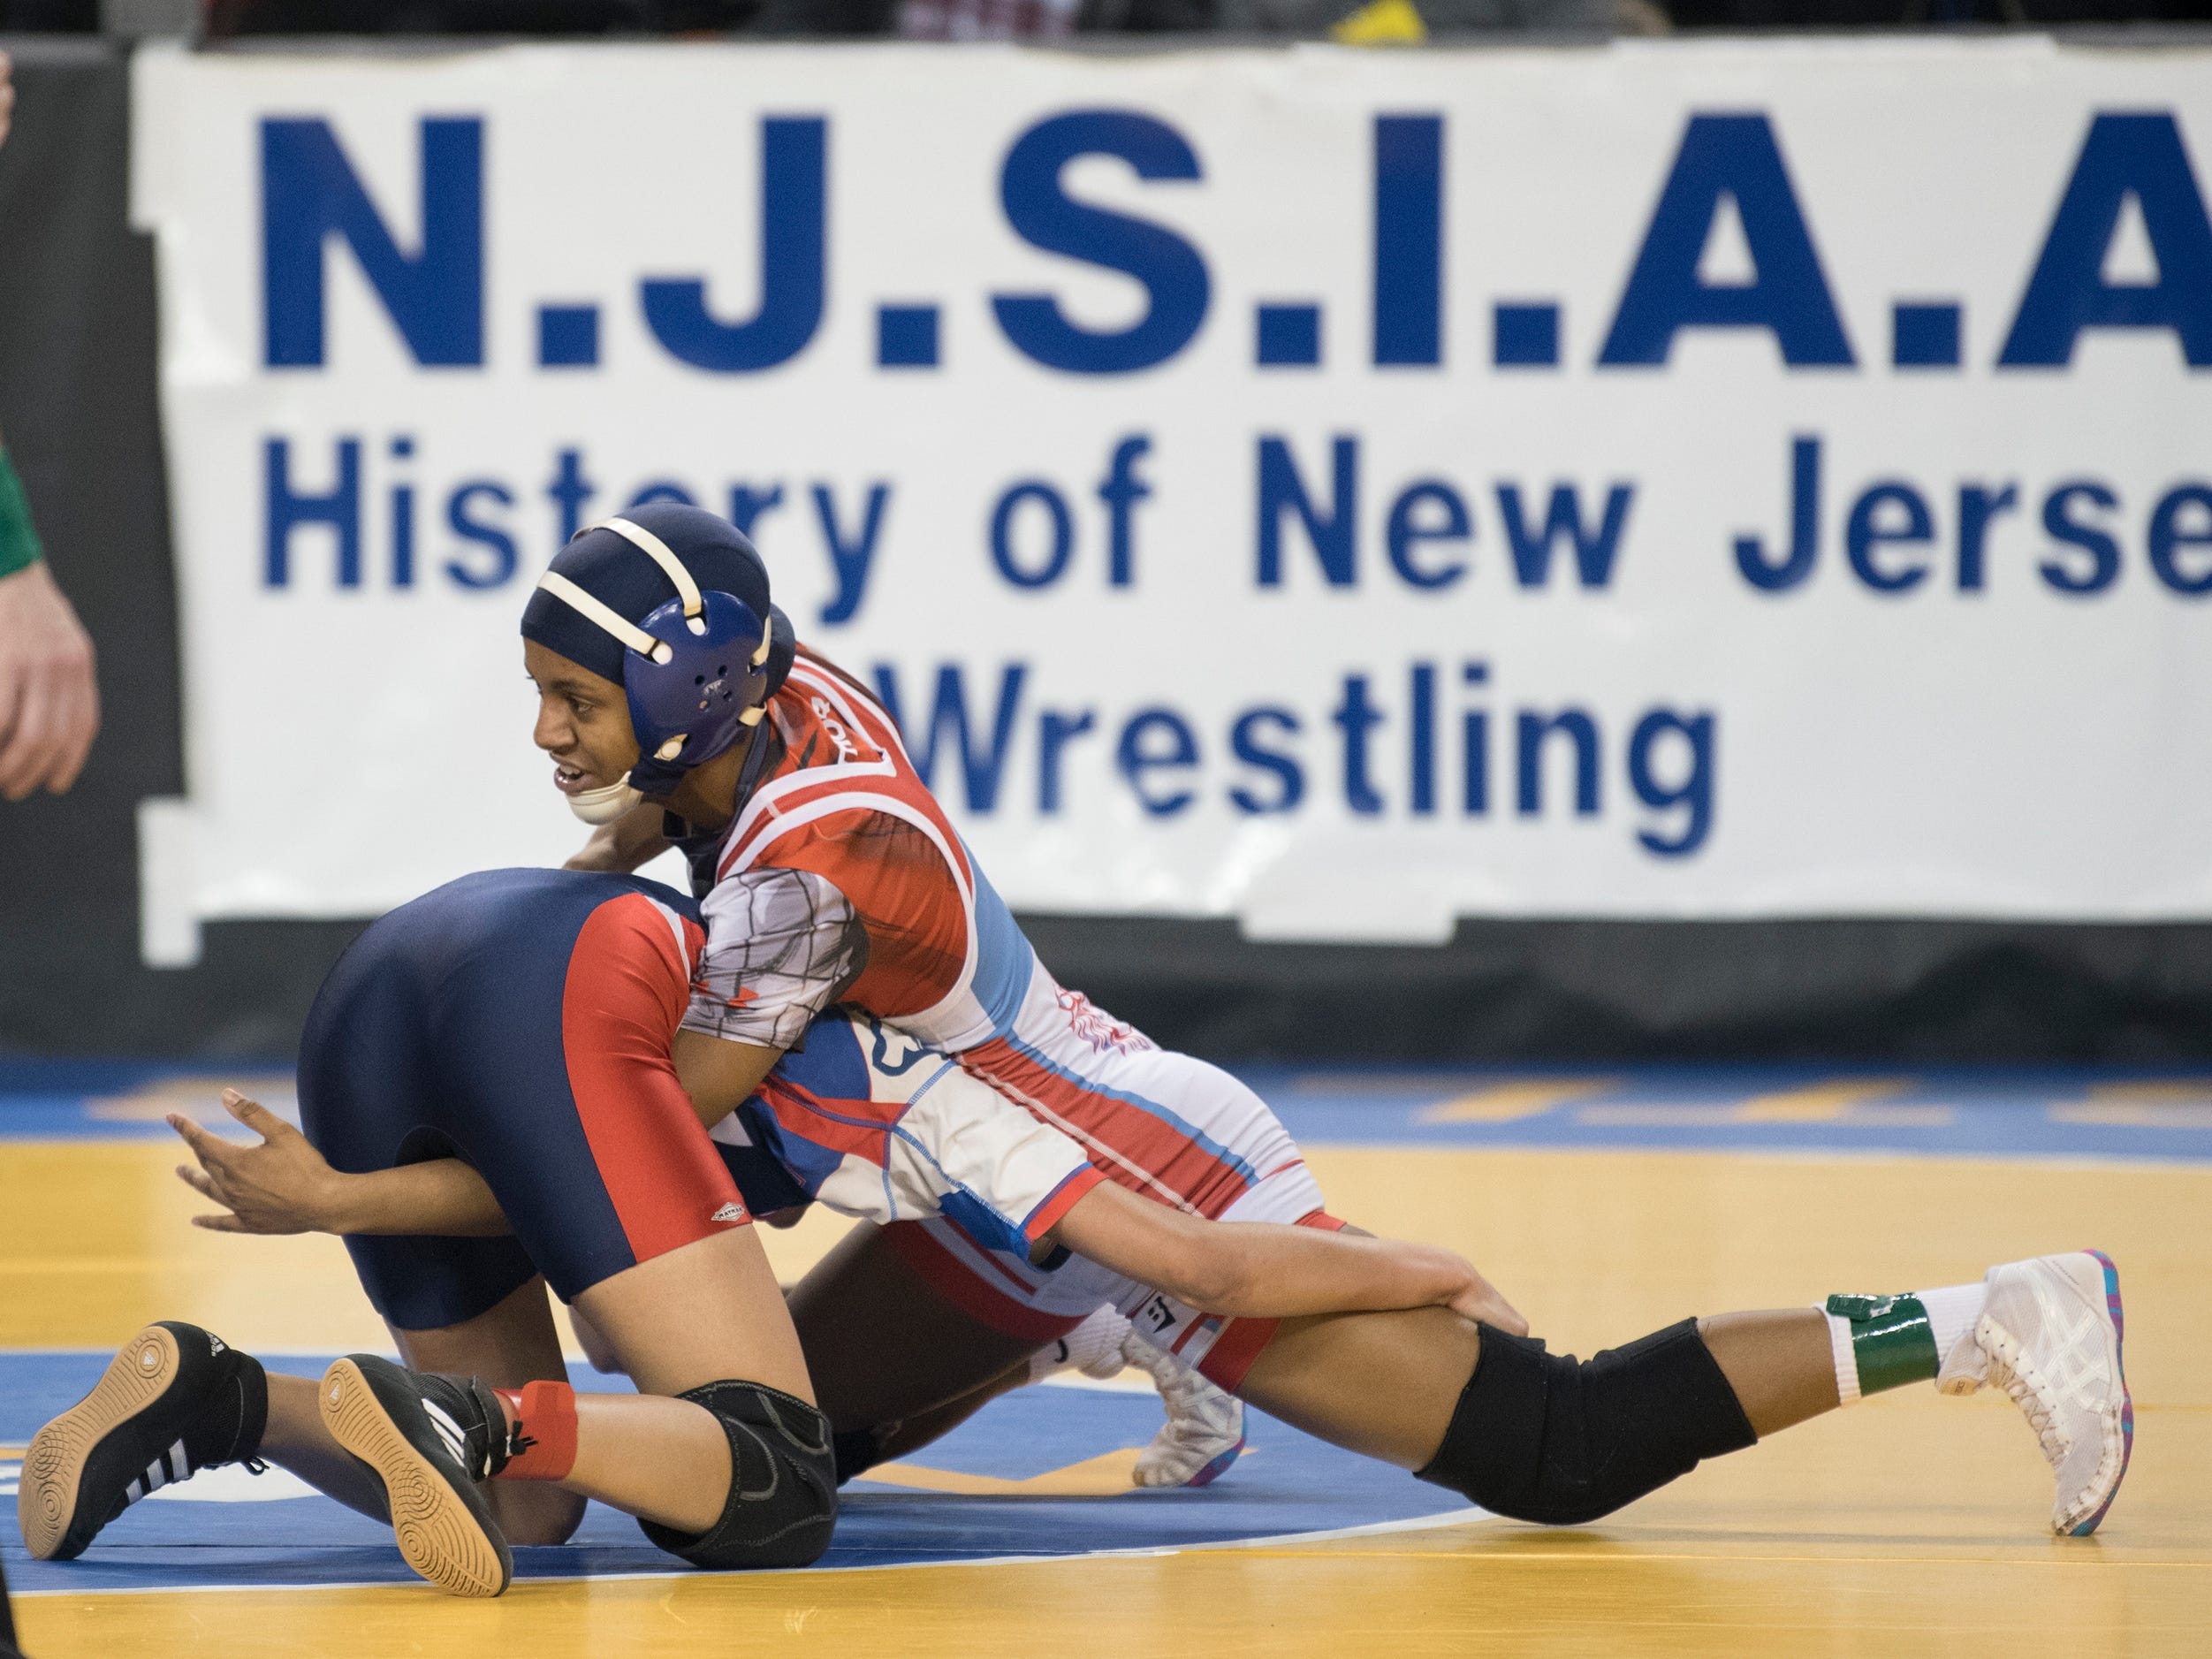 Pennsauken's Annmarie Lebron, top, controls Breanna Cervantes of Seacaucus during an 100 lb., opening round bout of the 2019 NJSIAA Girls State Wrestling Championships tournament held at Boardwalk Hall in Atlantic City on Friday, March 1, 2019.  Lebron won by pin.